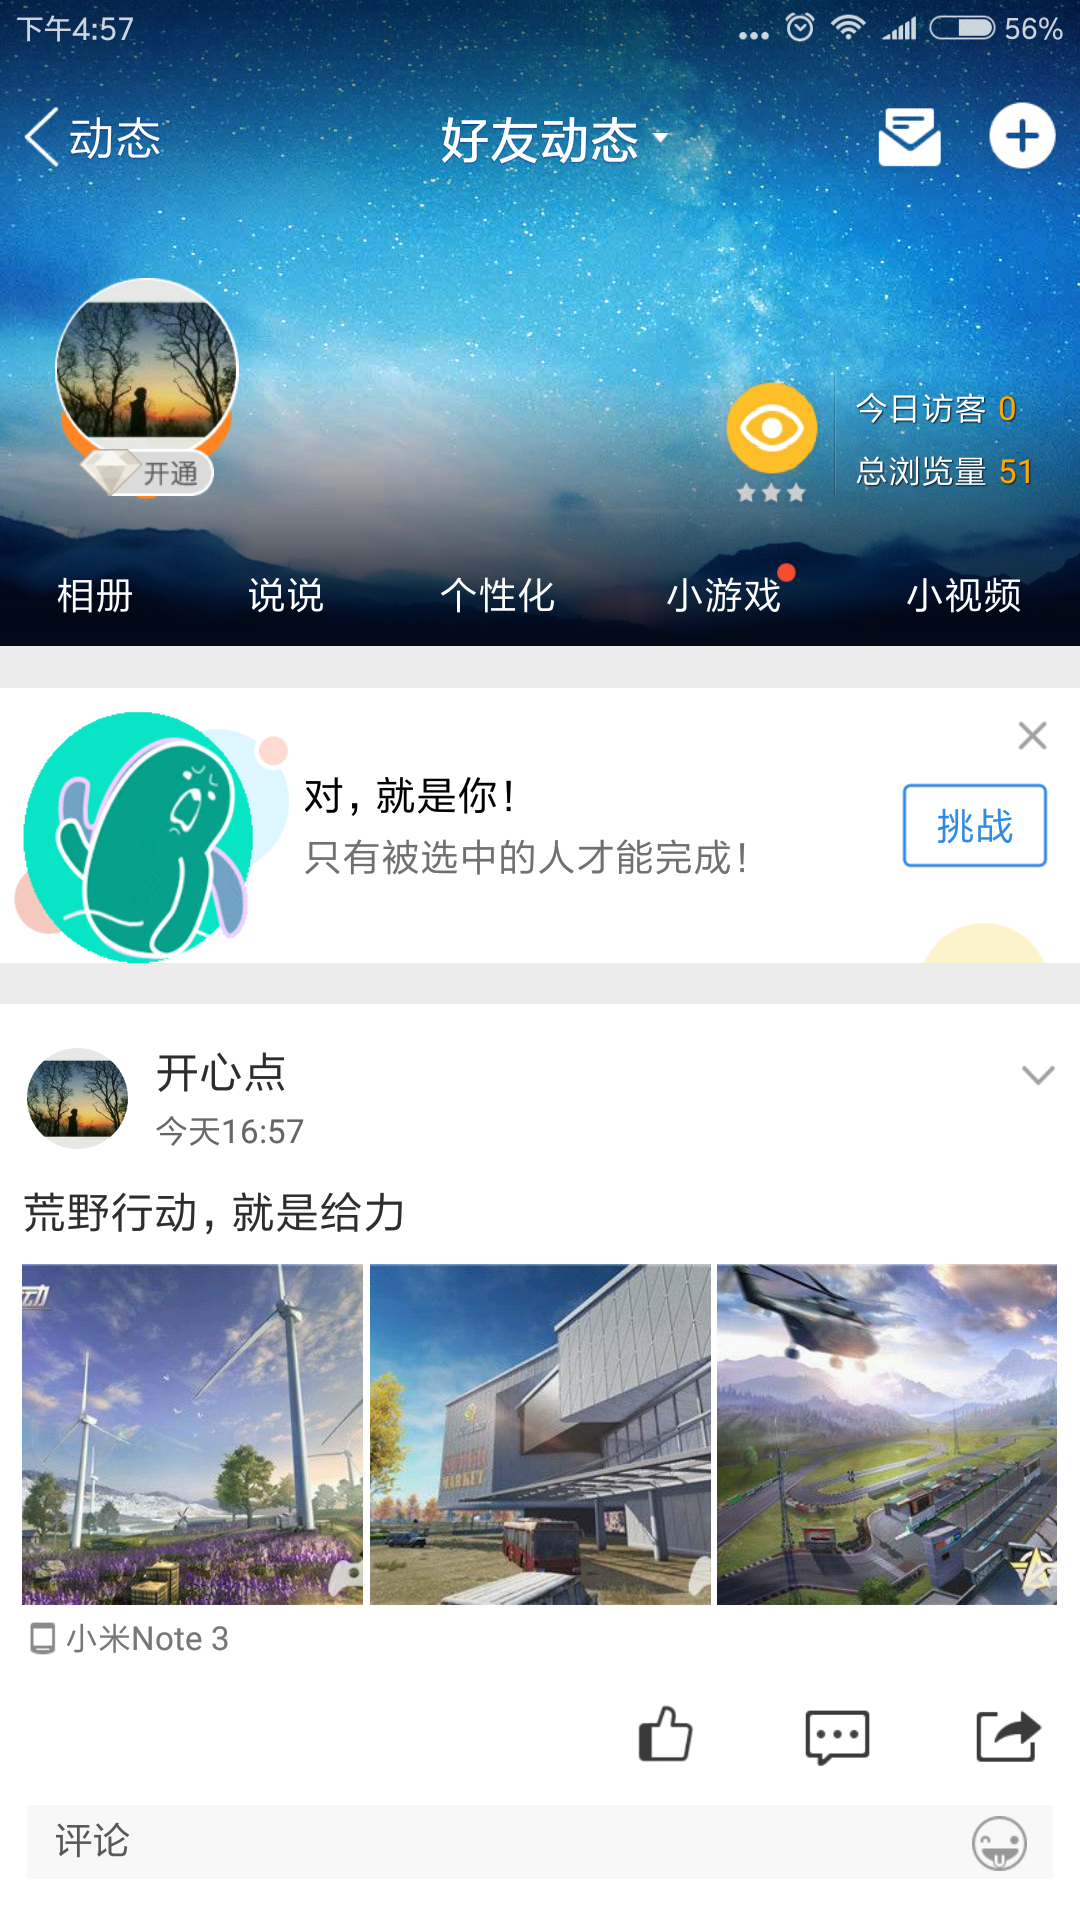 Screenshot_2018-04-12-16-57-04-667_com.tencent.mobileqq.png